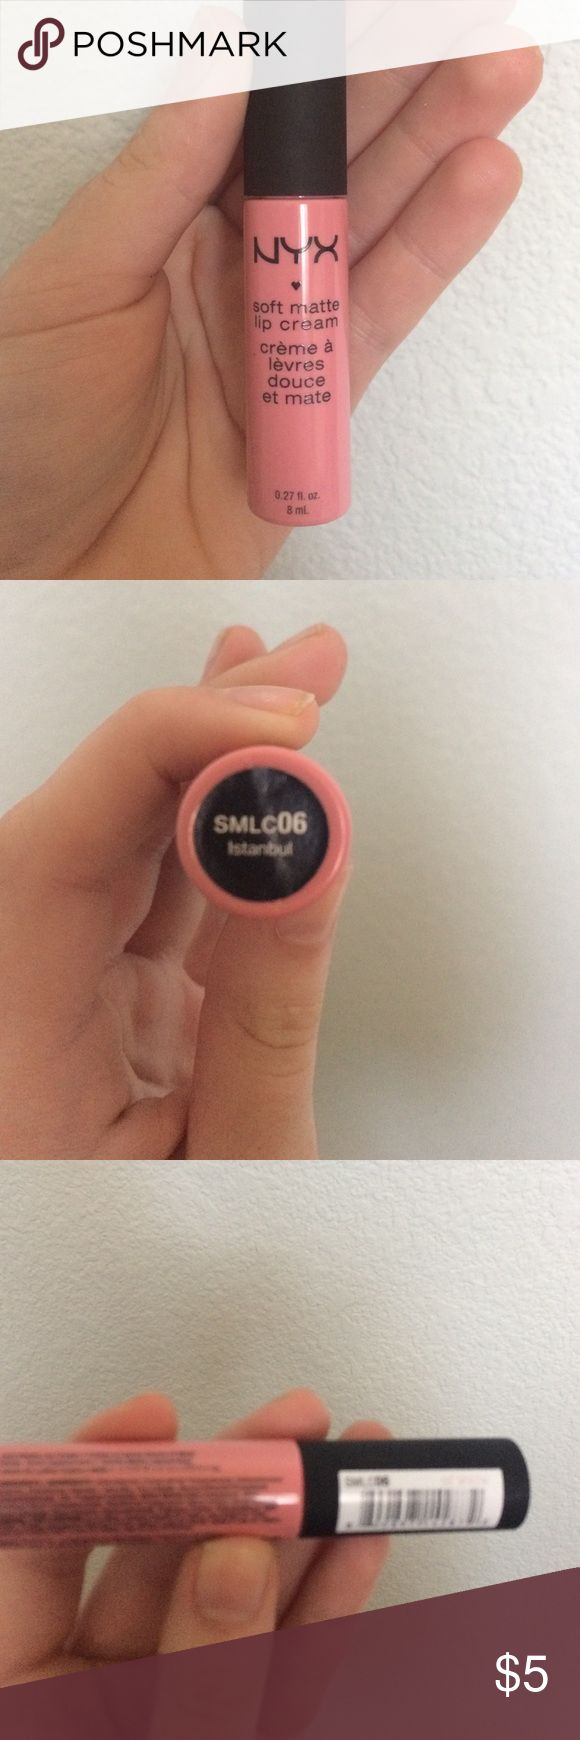 """Pretty Nyx Soft matte lip cream! Pretty pink matte lip cream """"Istanbul""""!! Used once but has been thoroughly sanitized!! Picture taken from Internet. NYX Makeup Lipstick"""